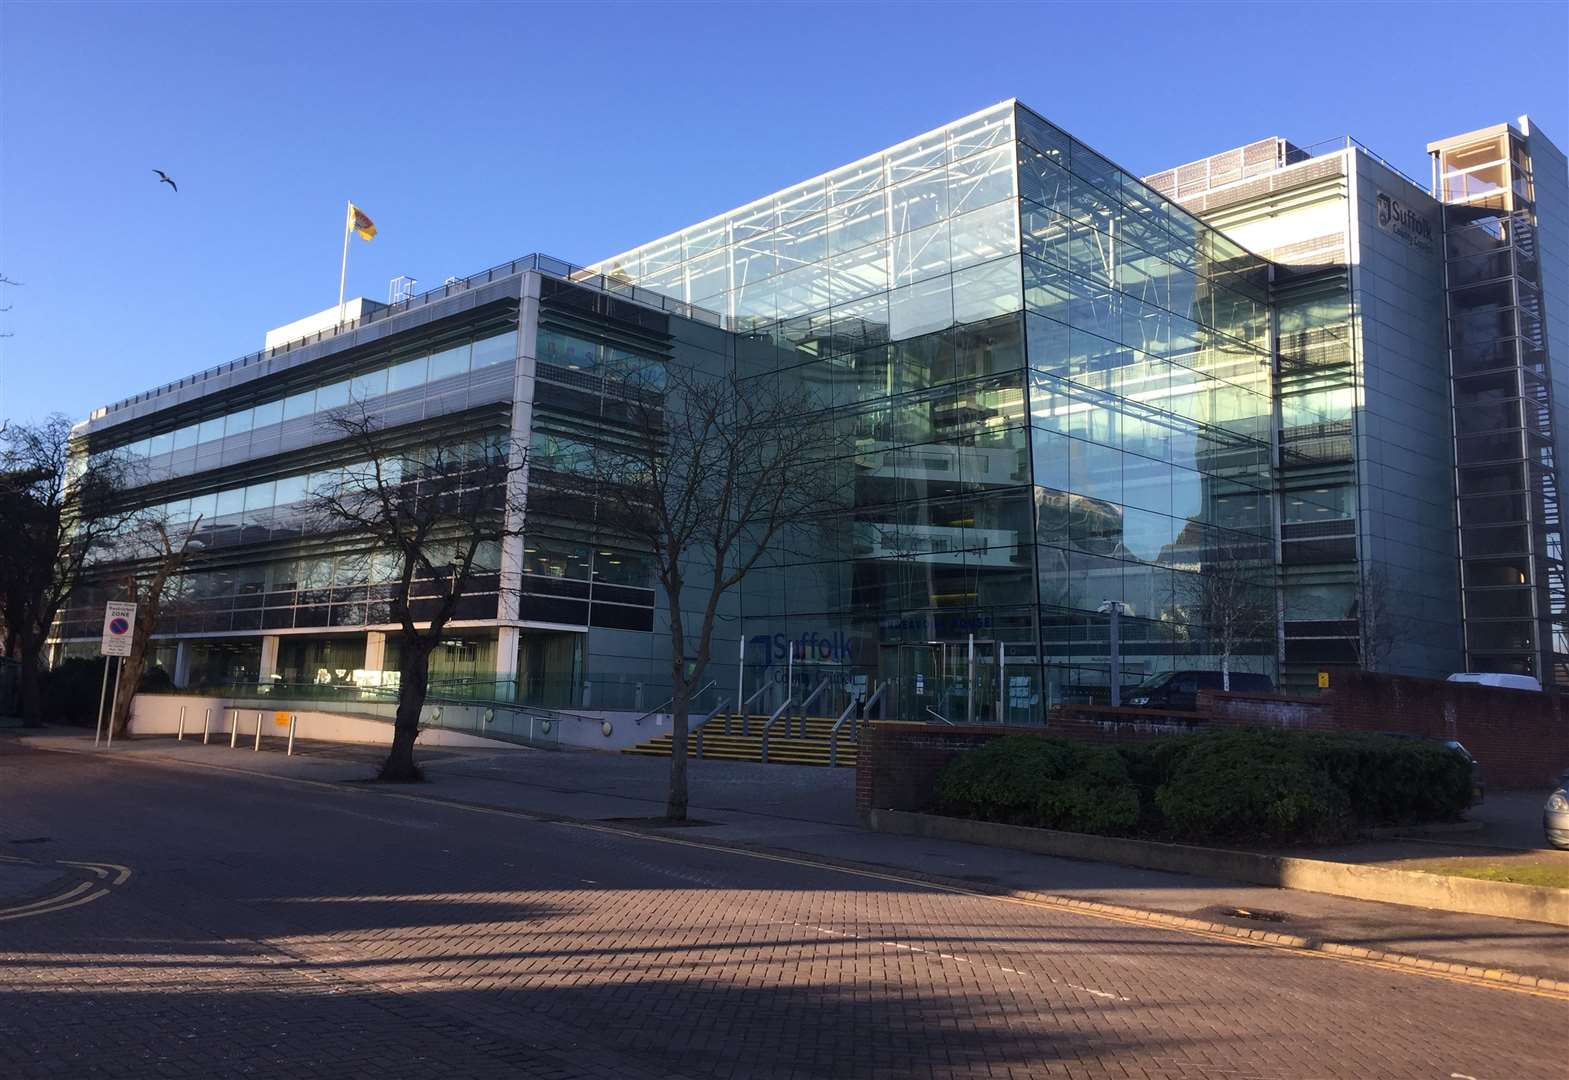 Report reveals overspend of £4.4m on Suffolk County Council budget despite cutbacks